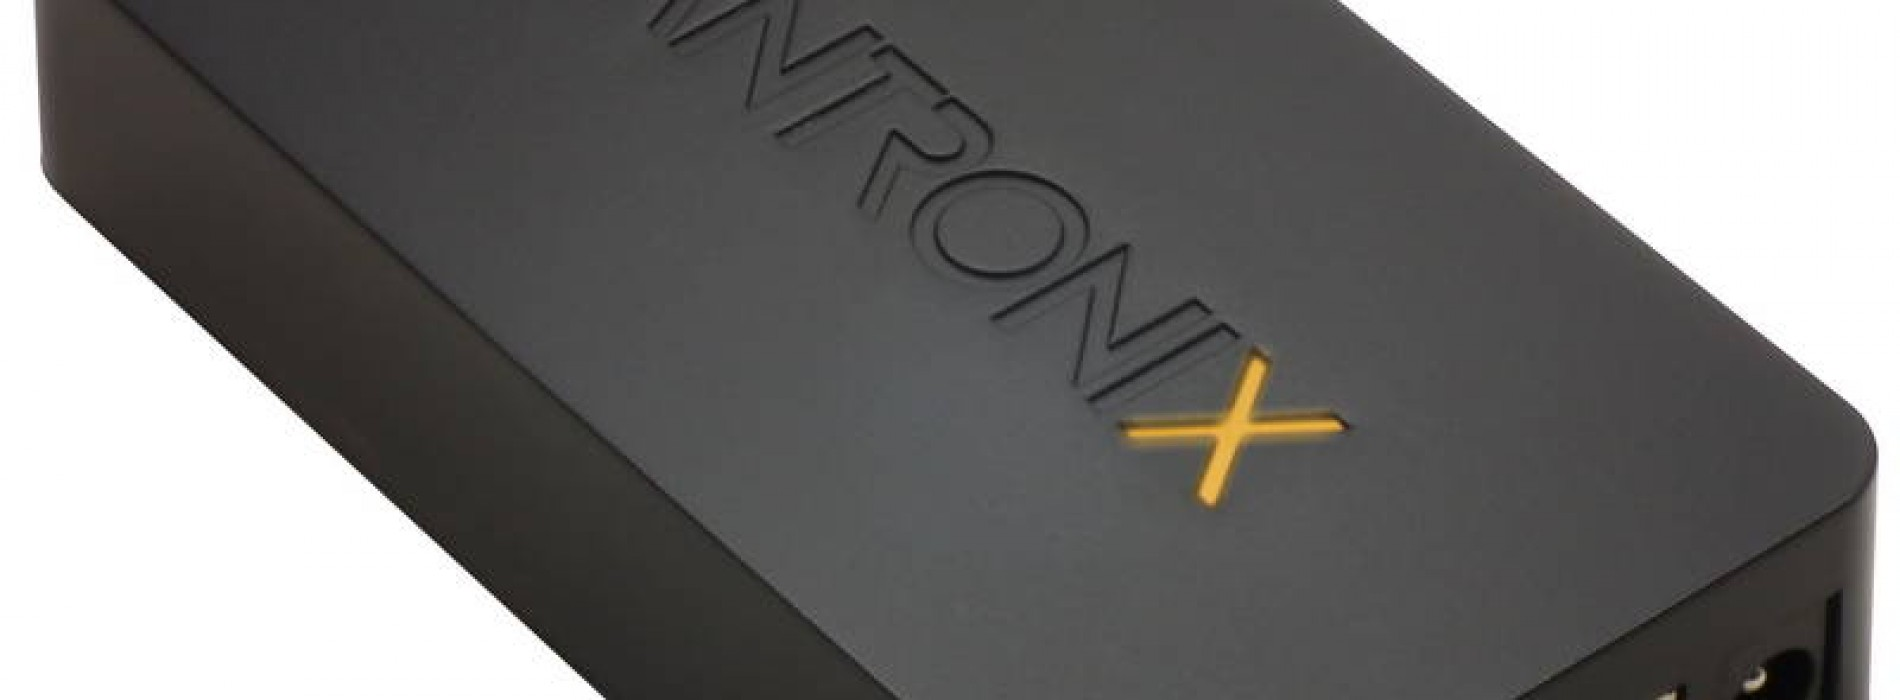 Lantronix debuts first Google Cloud Print-Certified mobile printing device